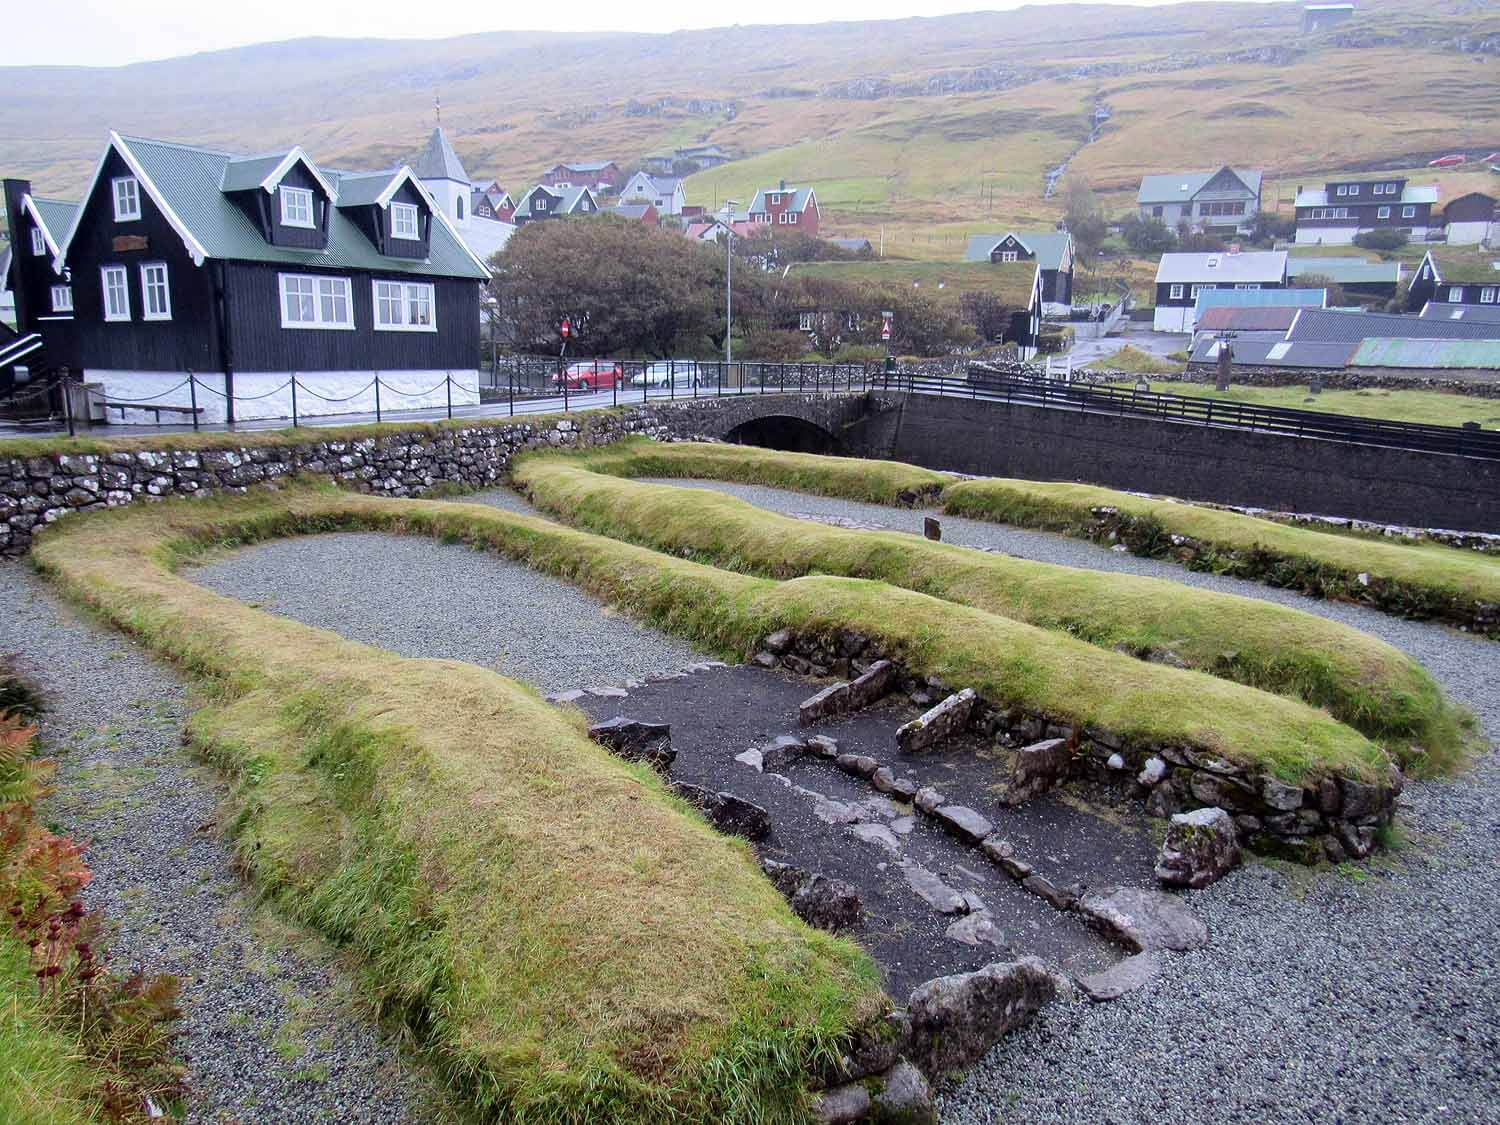 Remnants of an Ancient Civilization  - Kvívík is one of the most historic farmsteads in the Faroes and remains of Viking settlements can still be seen today. Excavations confirm the longhouse and barn were built here nearly 1,000 years ago.